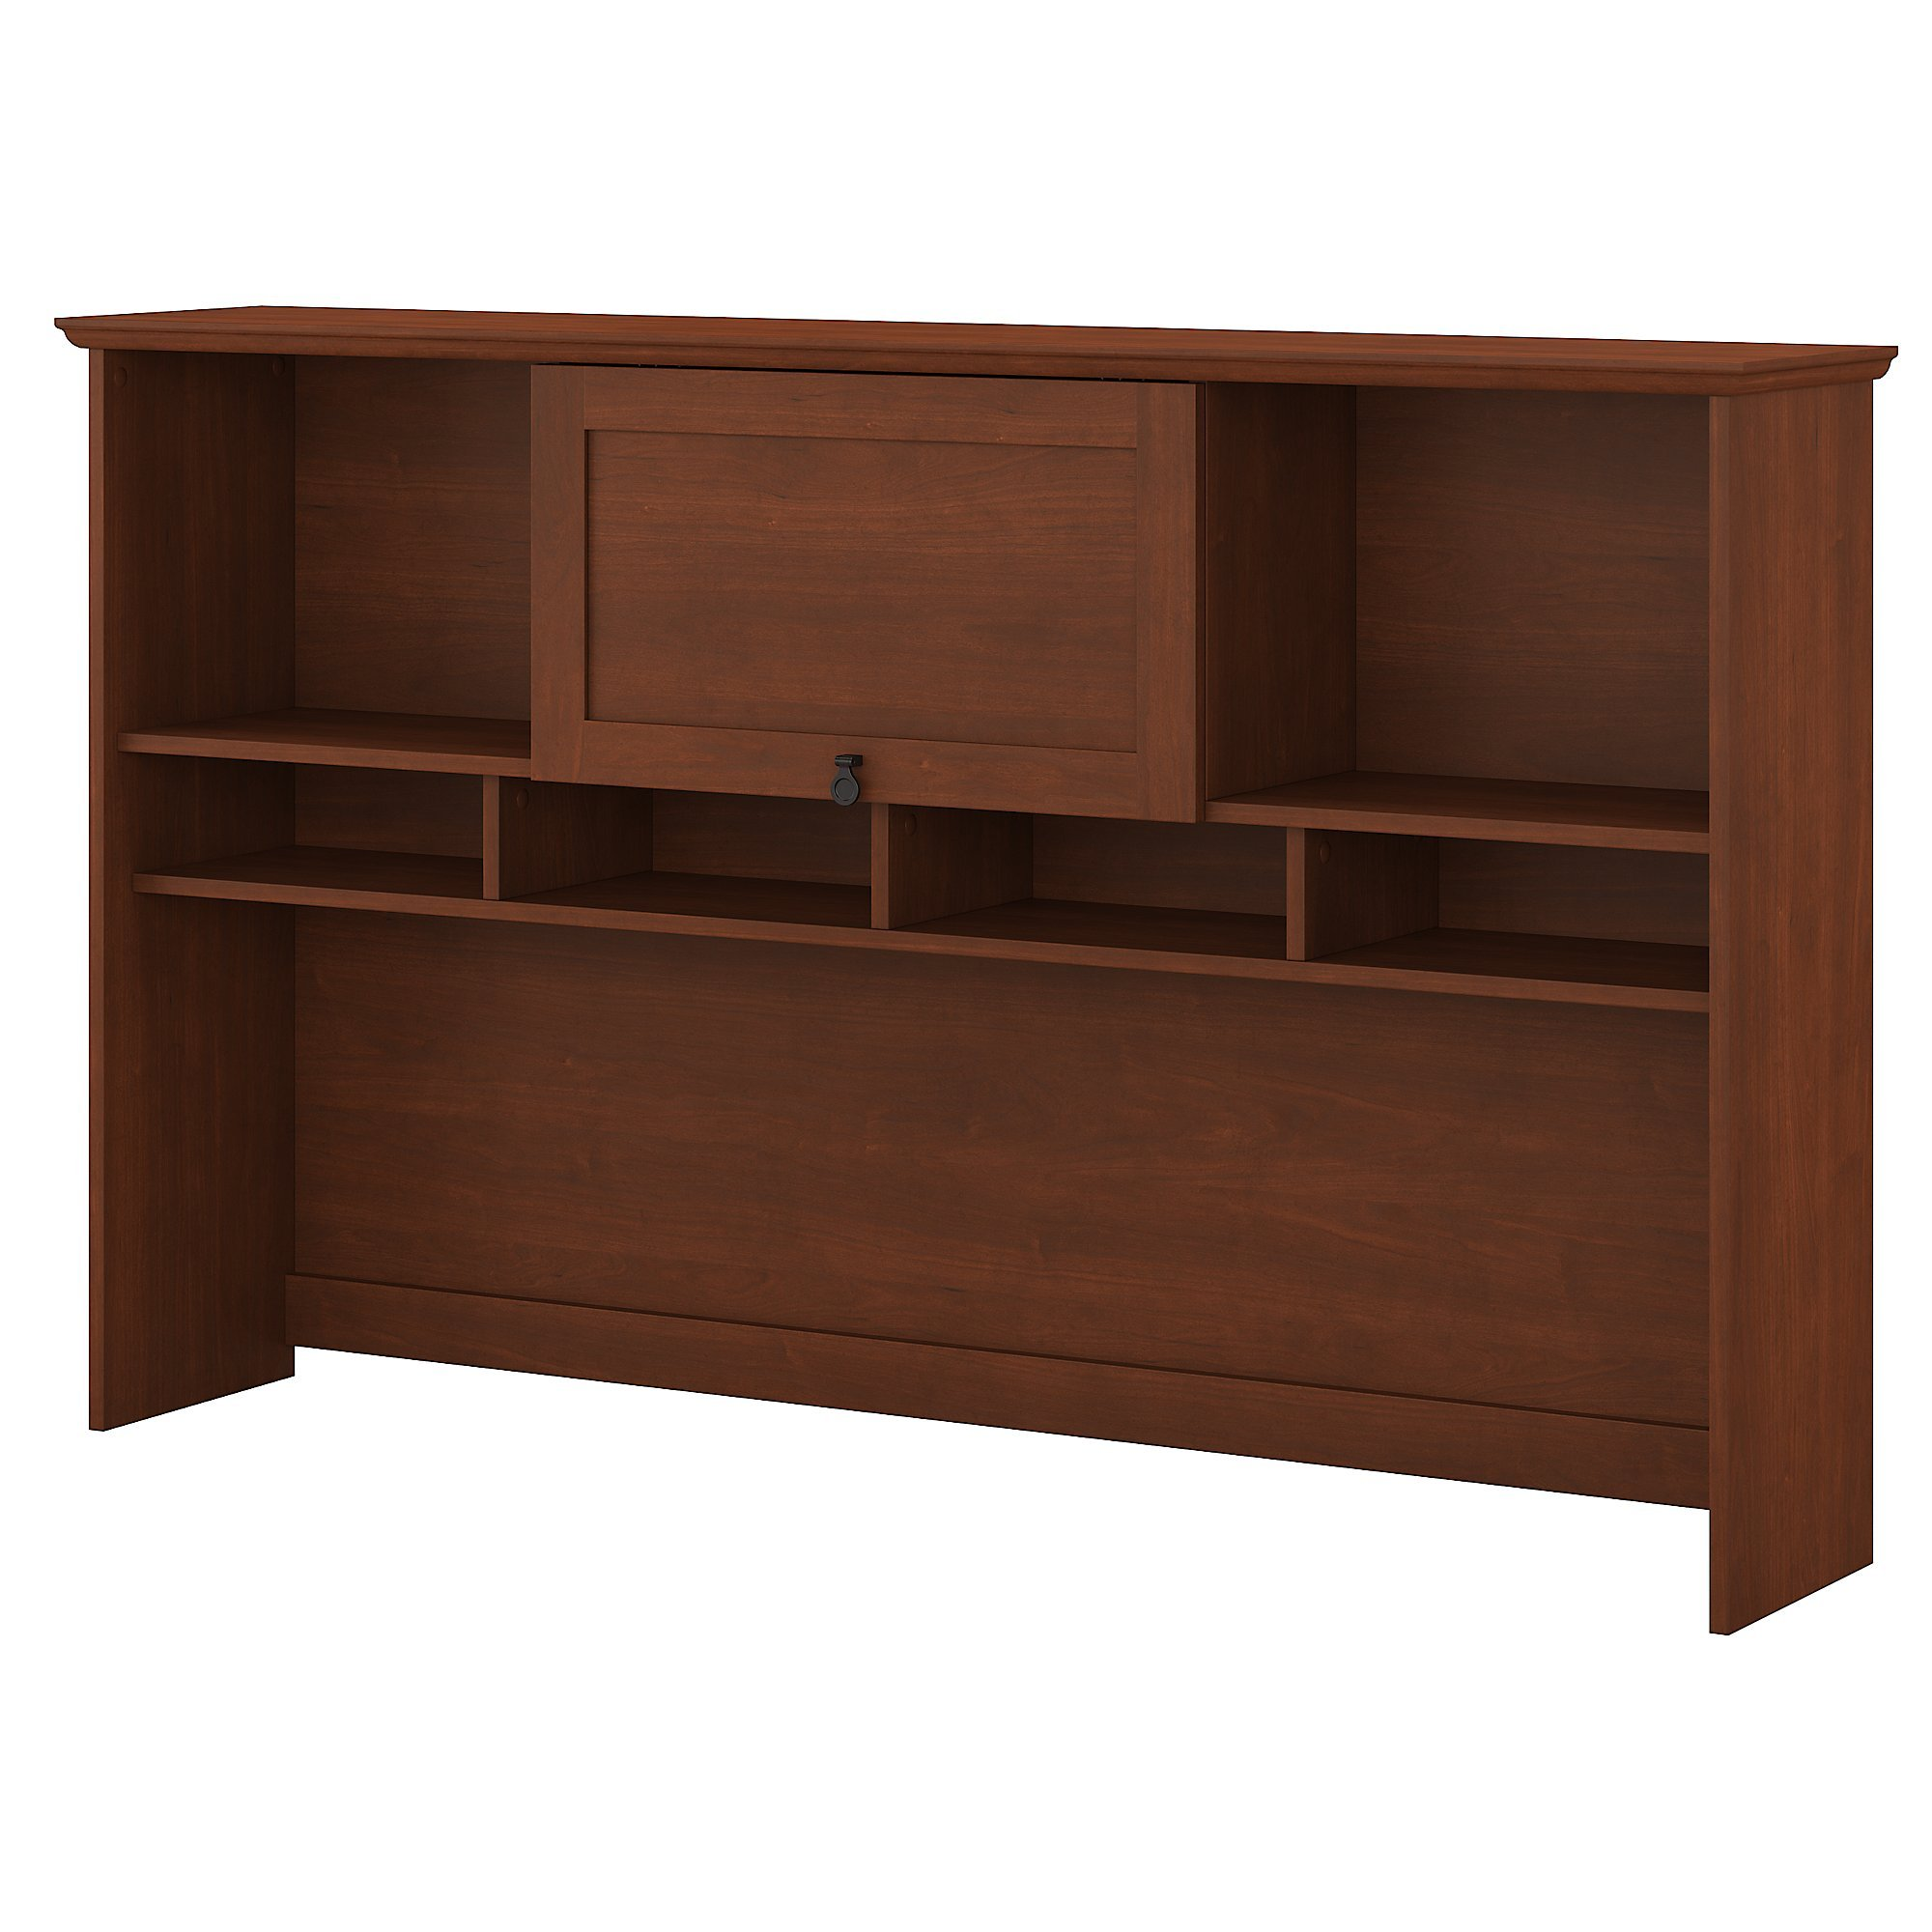 Bush Furniture Buena Vista 60W Hutch in Serene Cherry by Bush Furniture